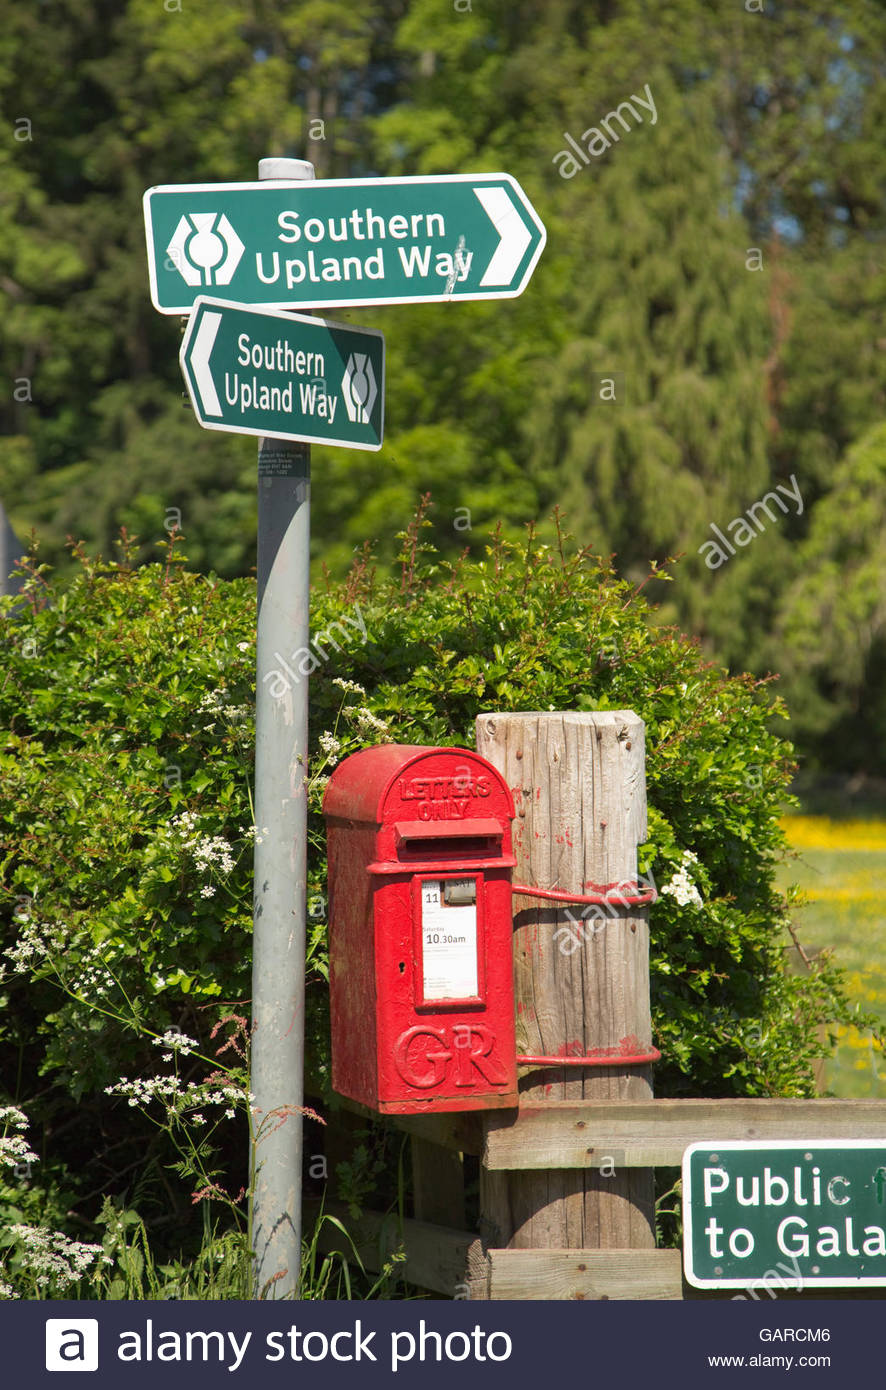 A Royal Mail post box and sign post for the Southern Upland Way - a long distance walking route at Fairnilee or - Stock Image